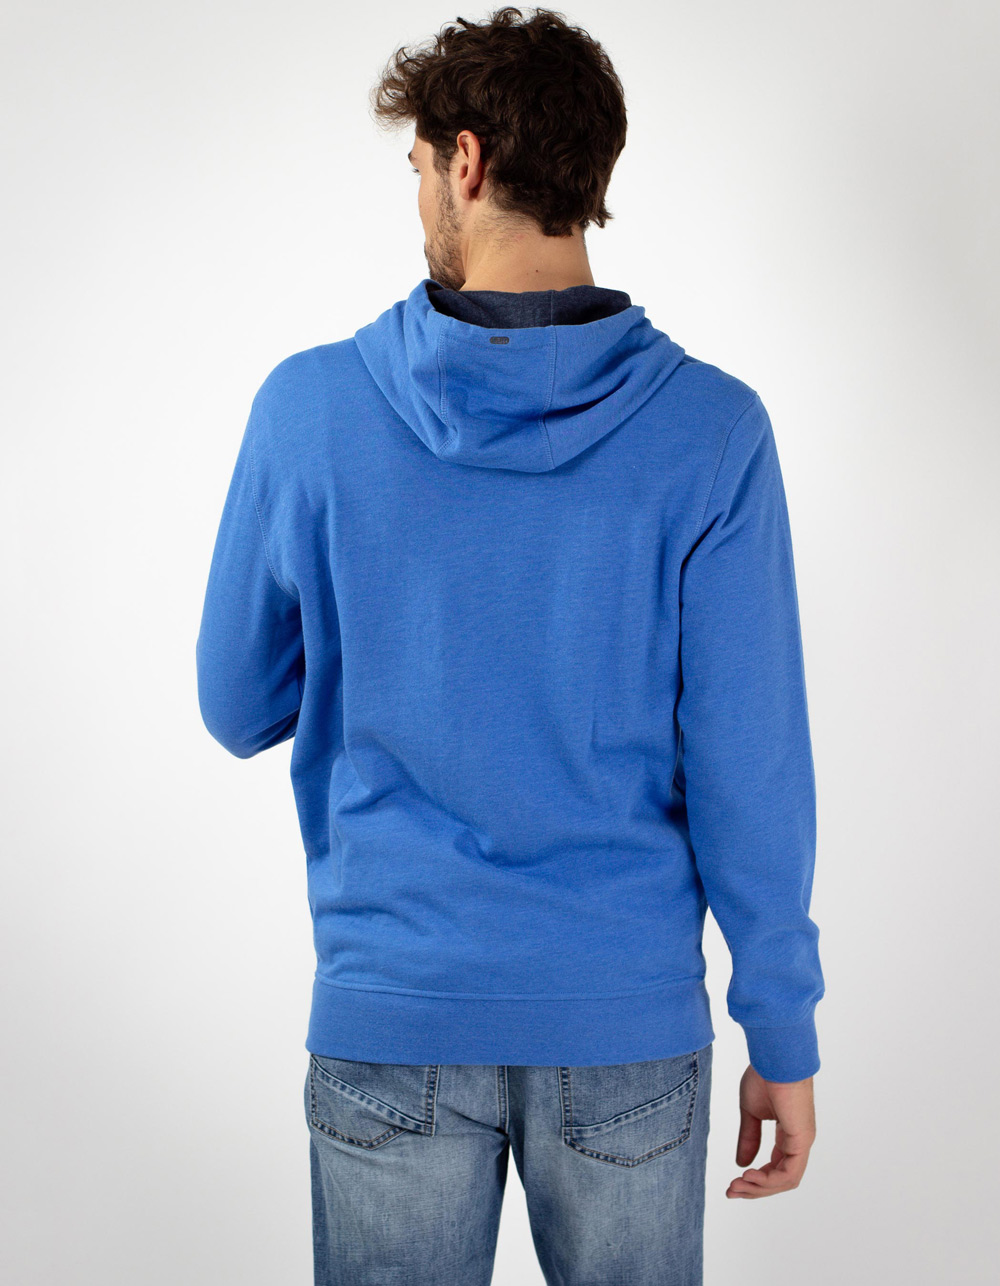 Sudadera NEW HAMPTON azul - Backside